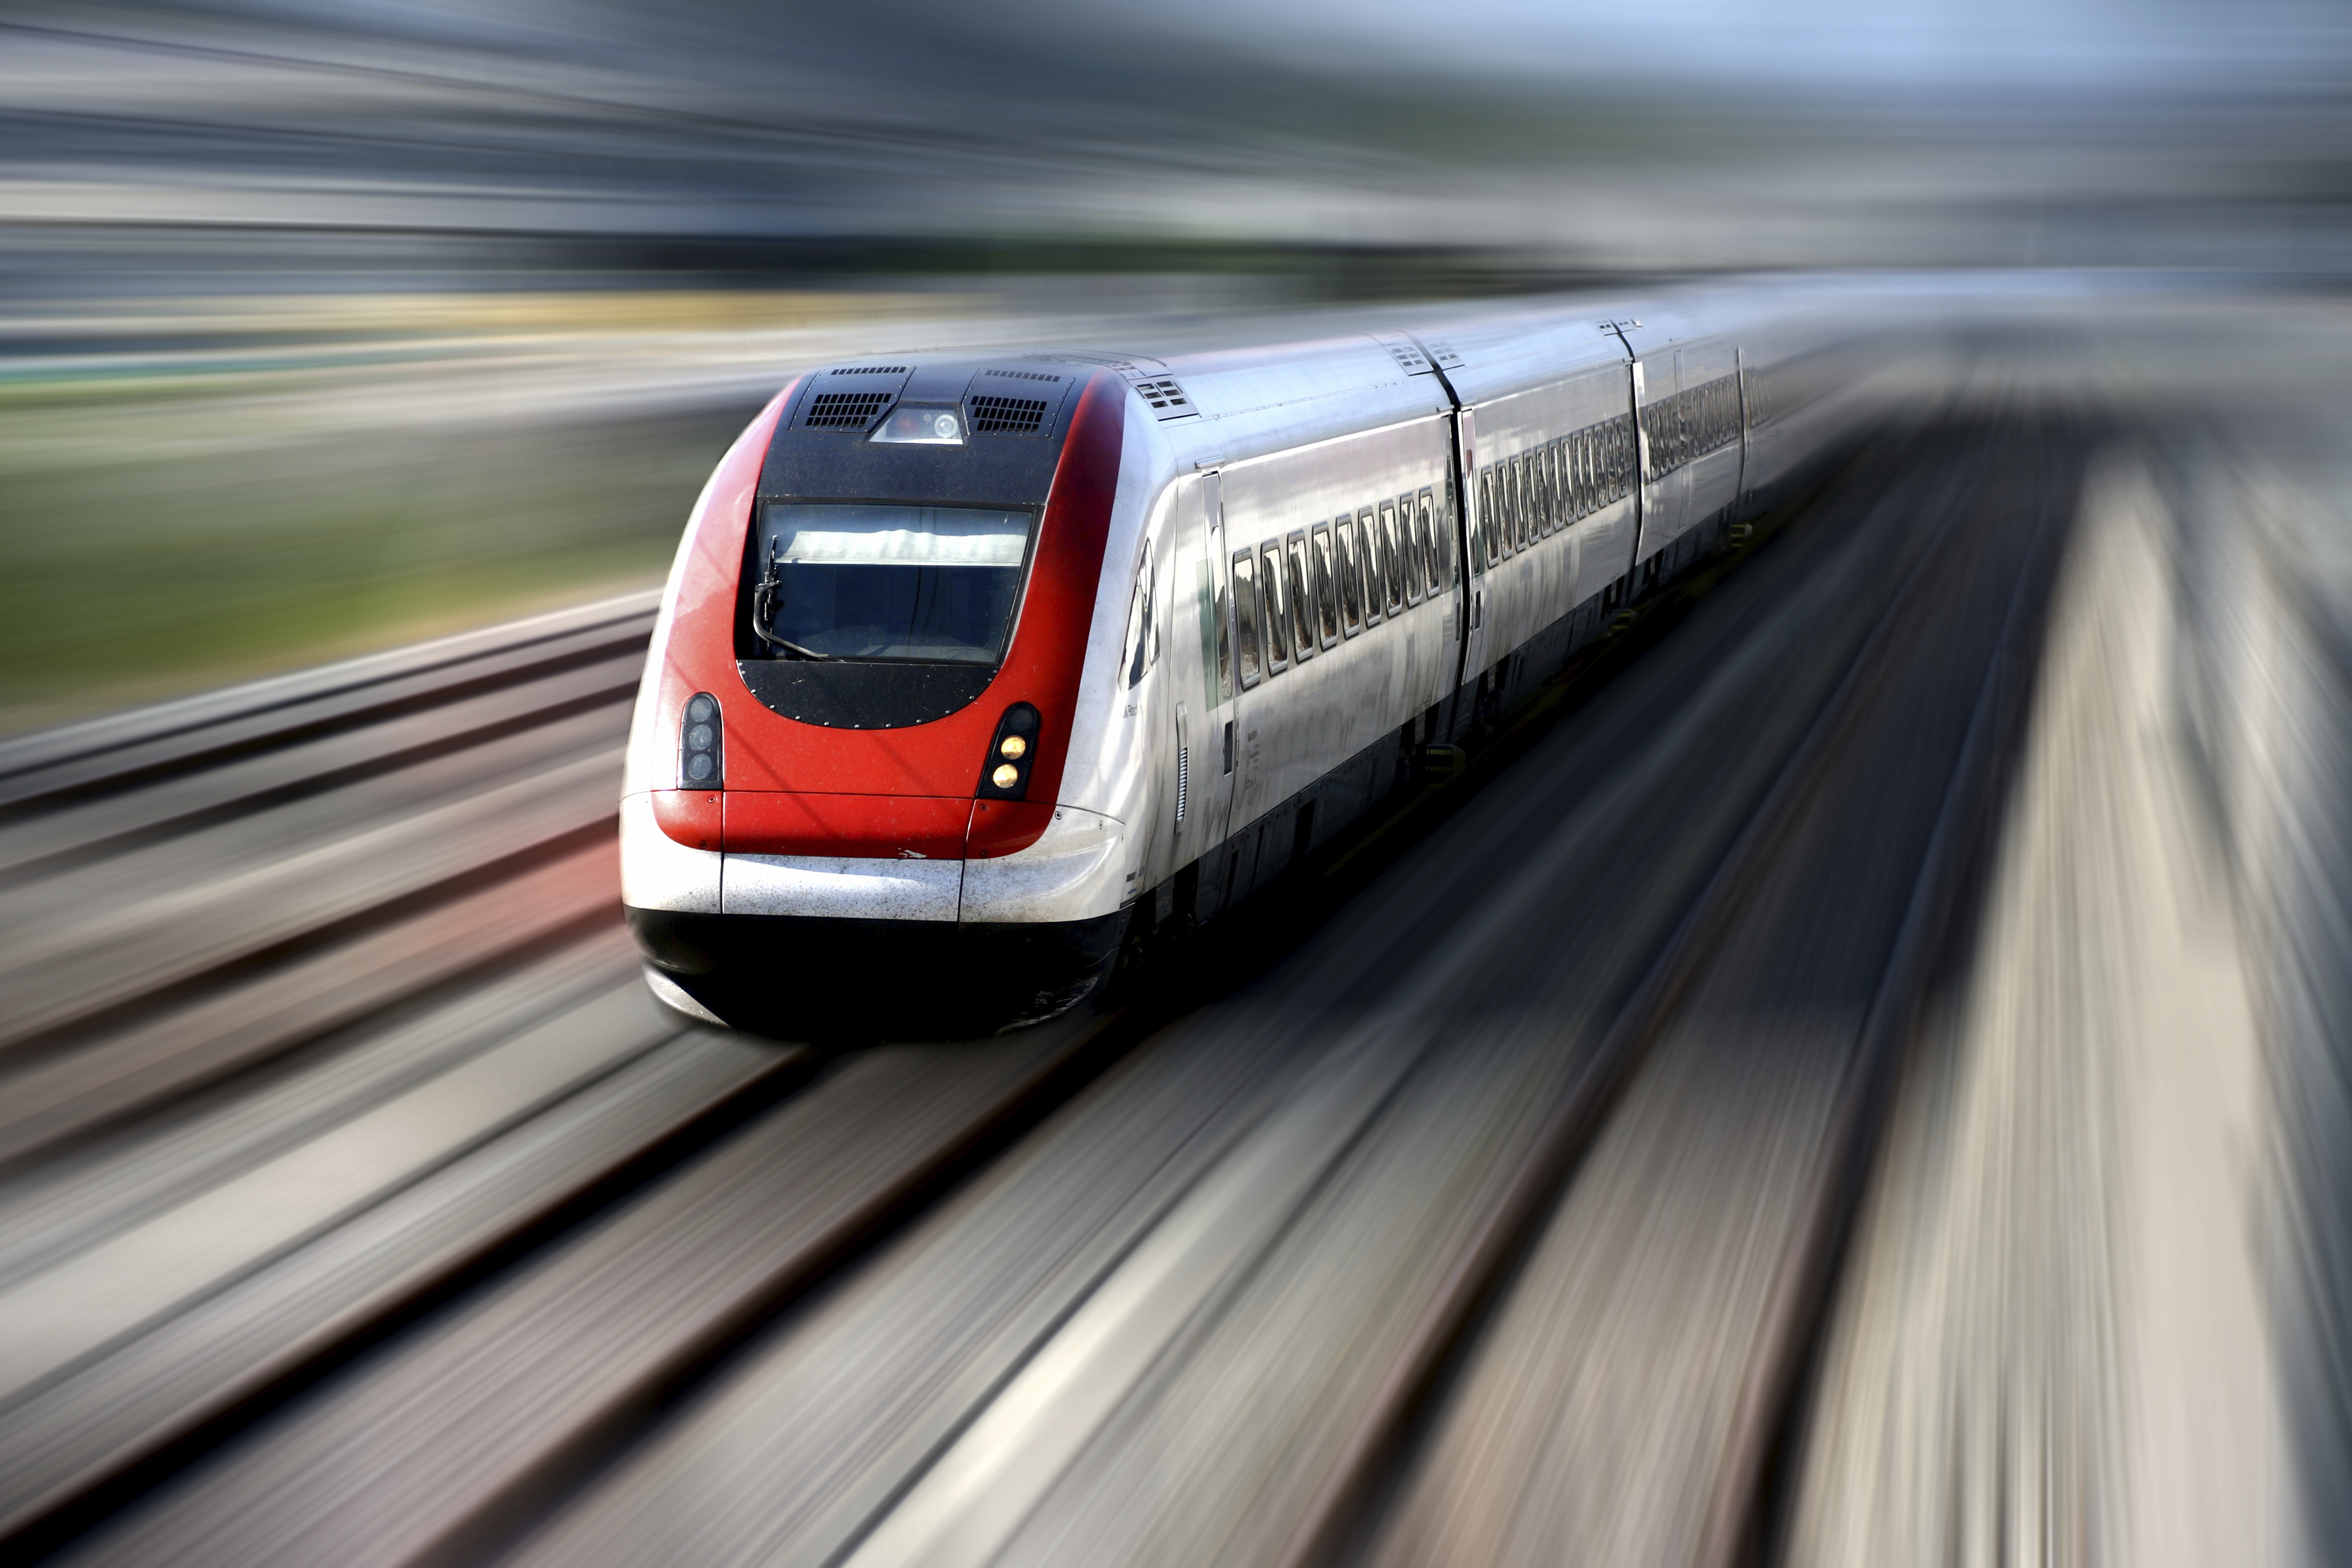 Railway communication networks need important changes